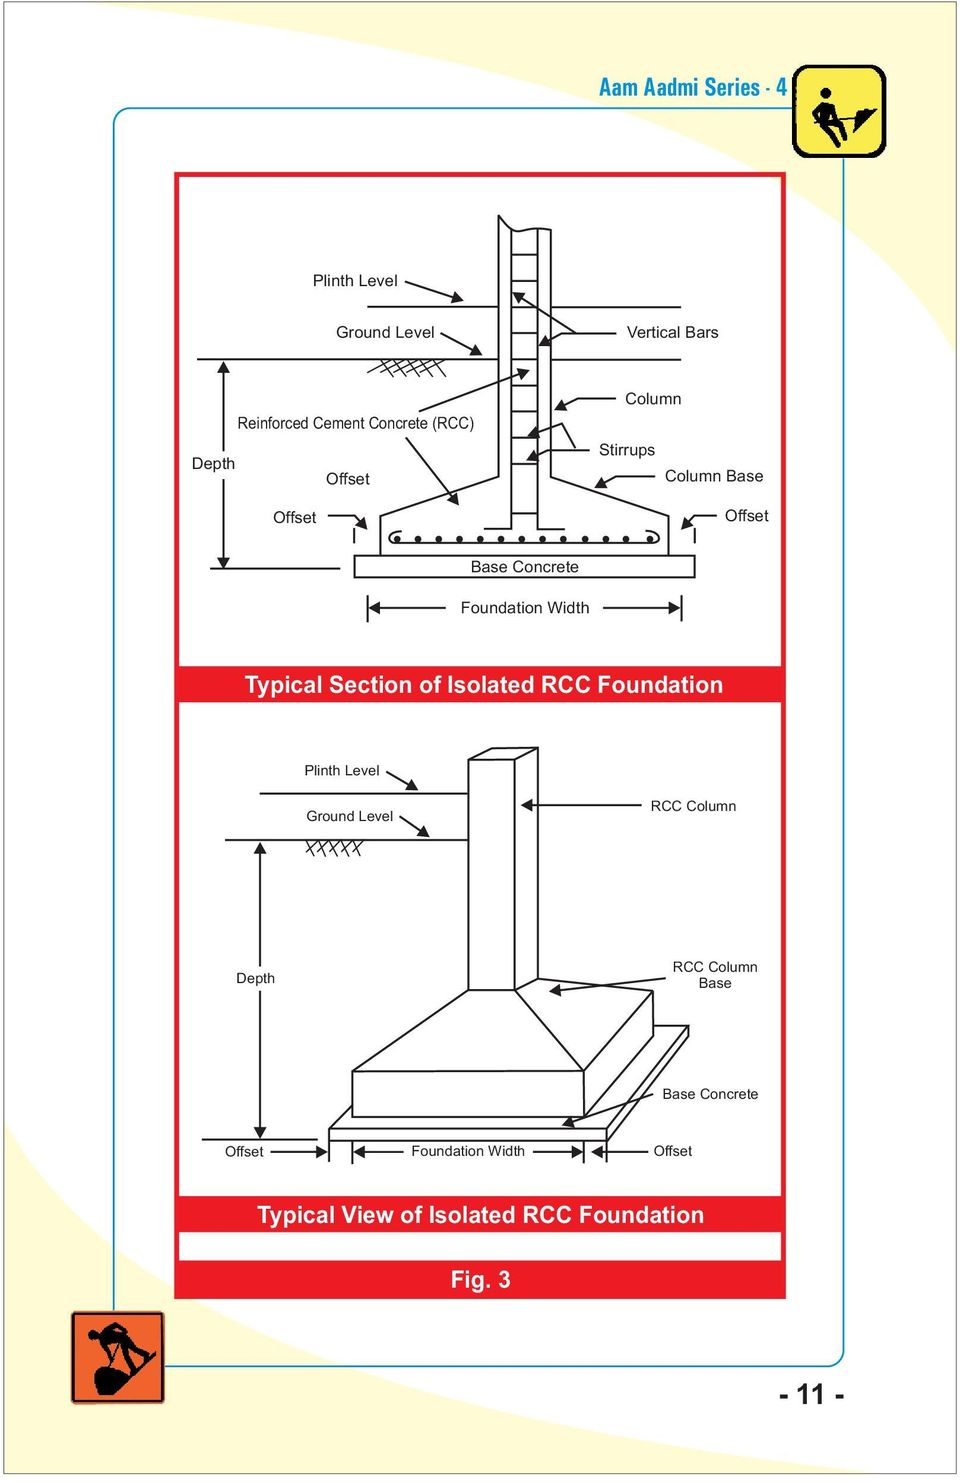 of Isolated RCC Foundation Plinth Level Ground Level RCC Column Depth RCC Column Base